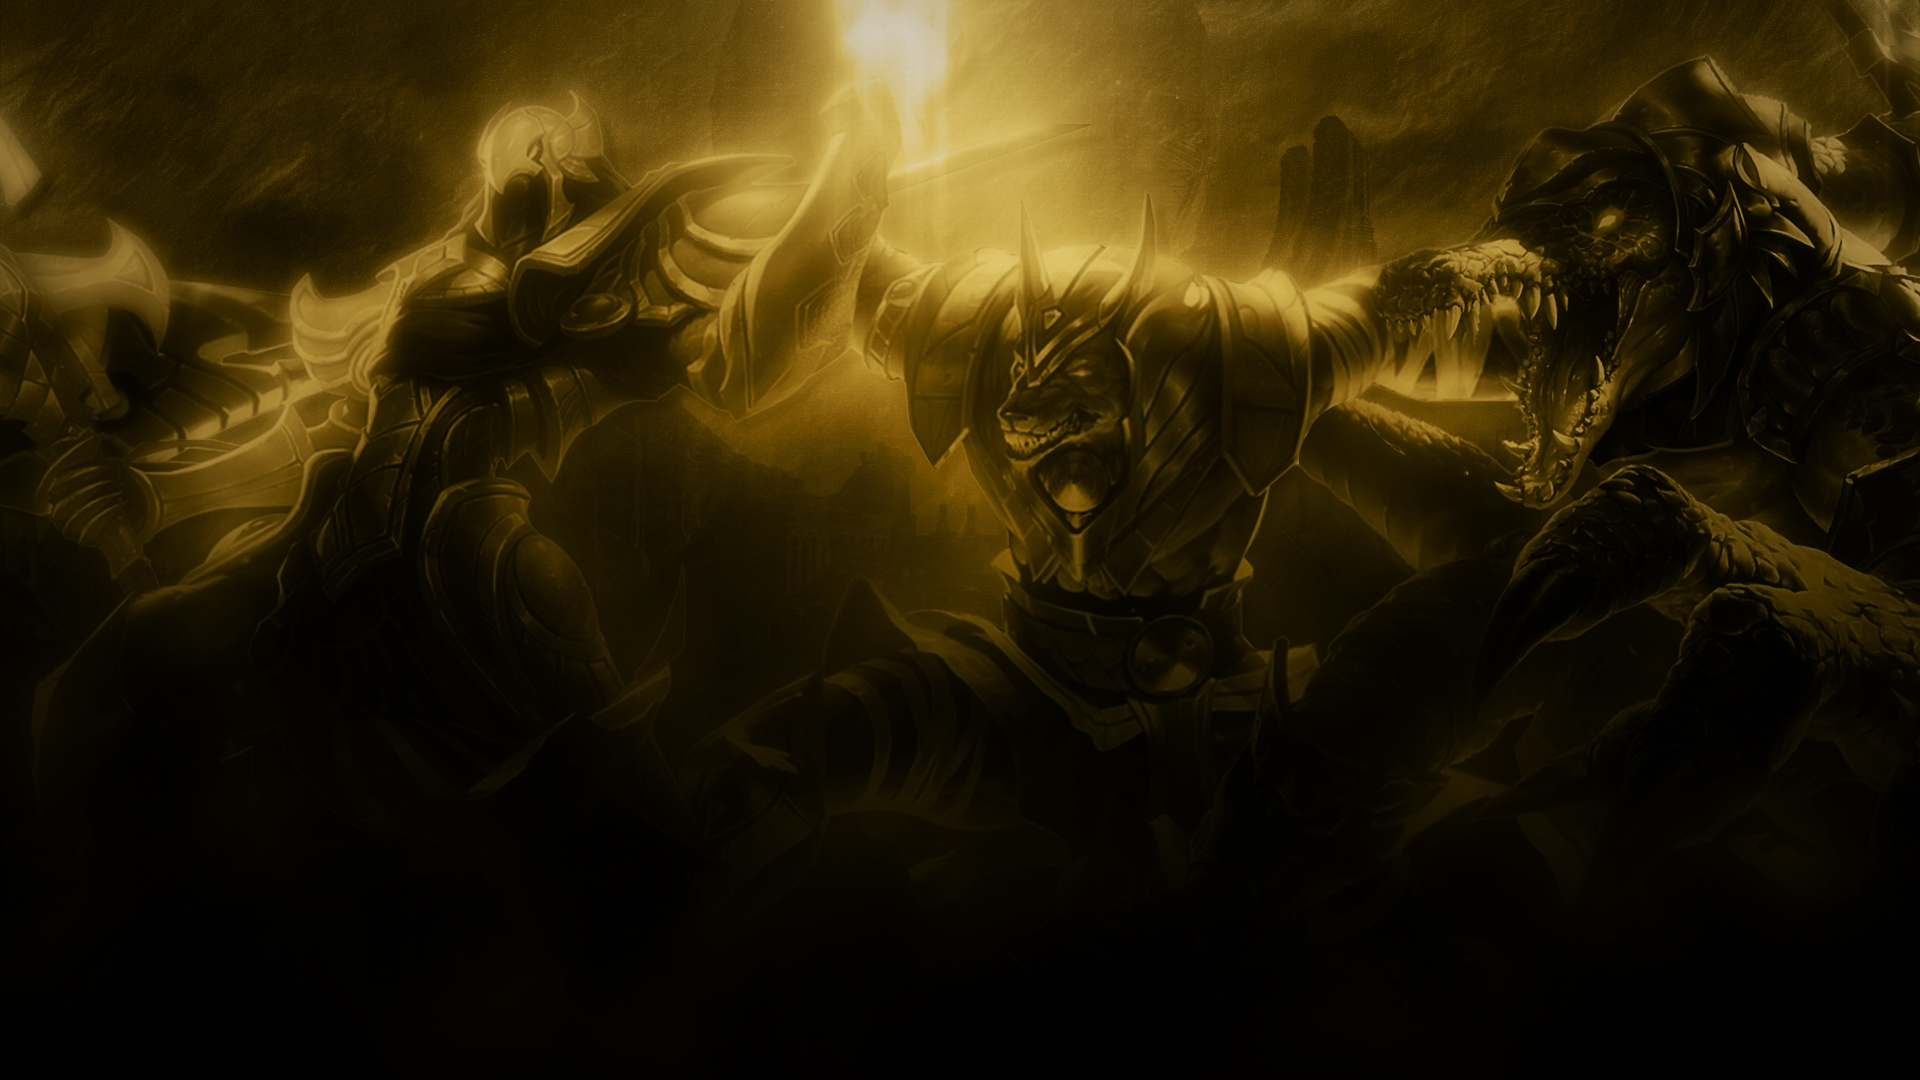 azir nasus amp renekton lolwallpapers